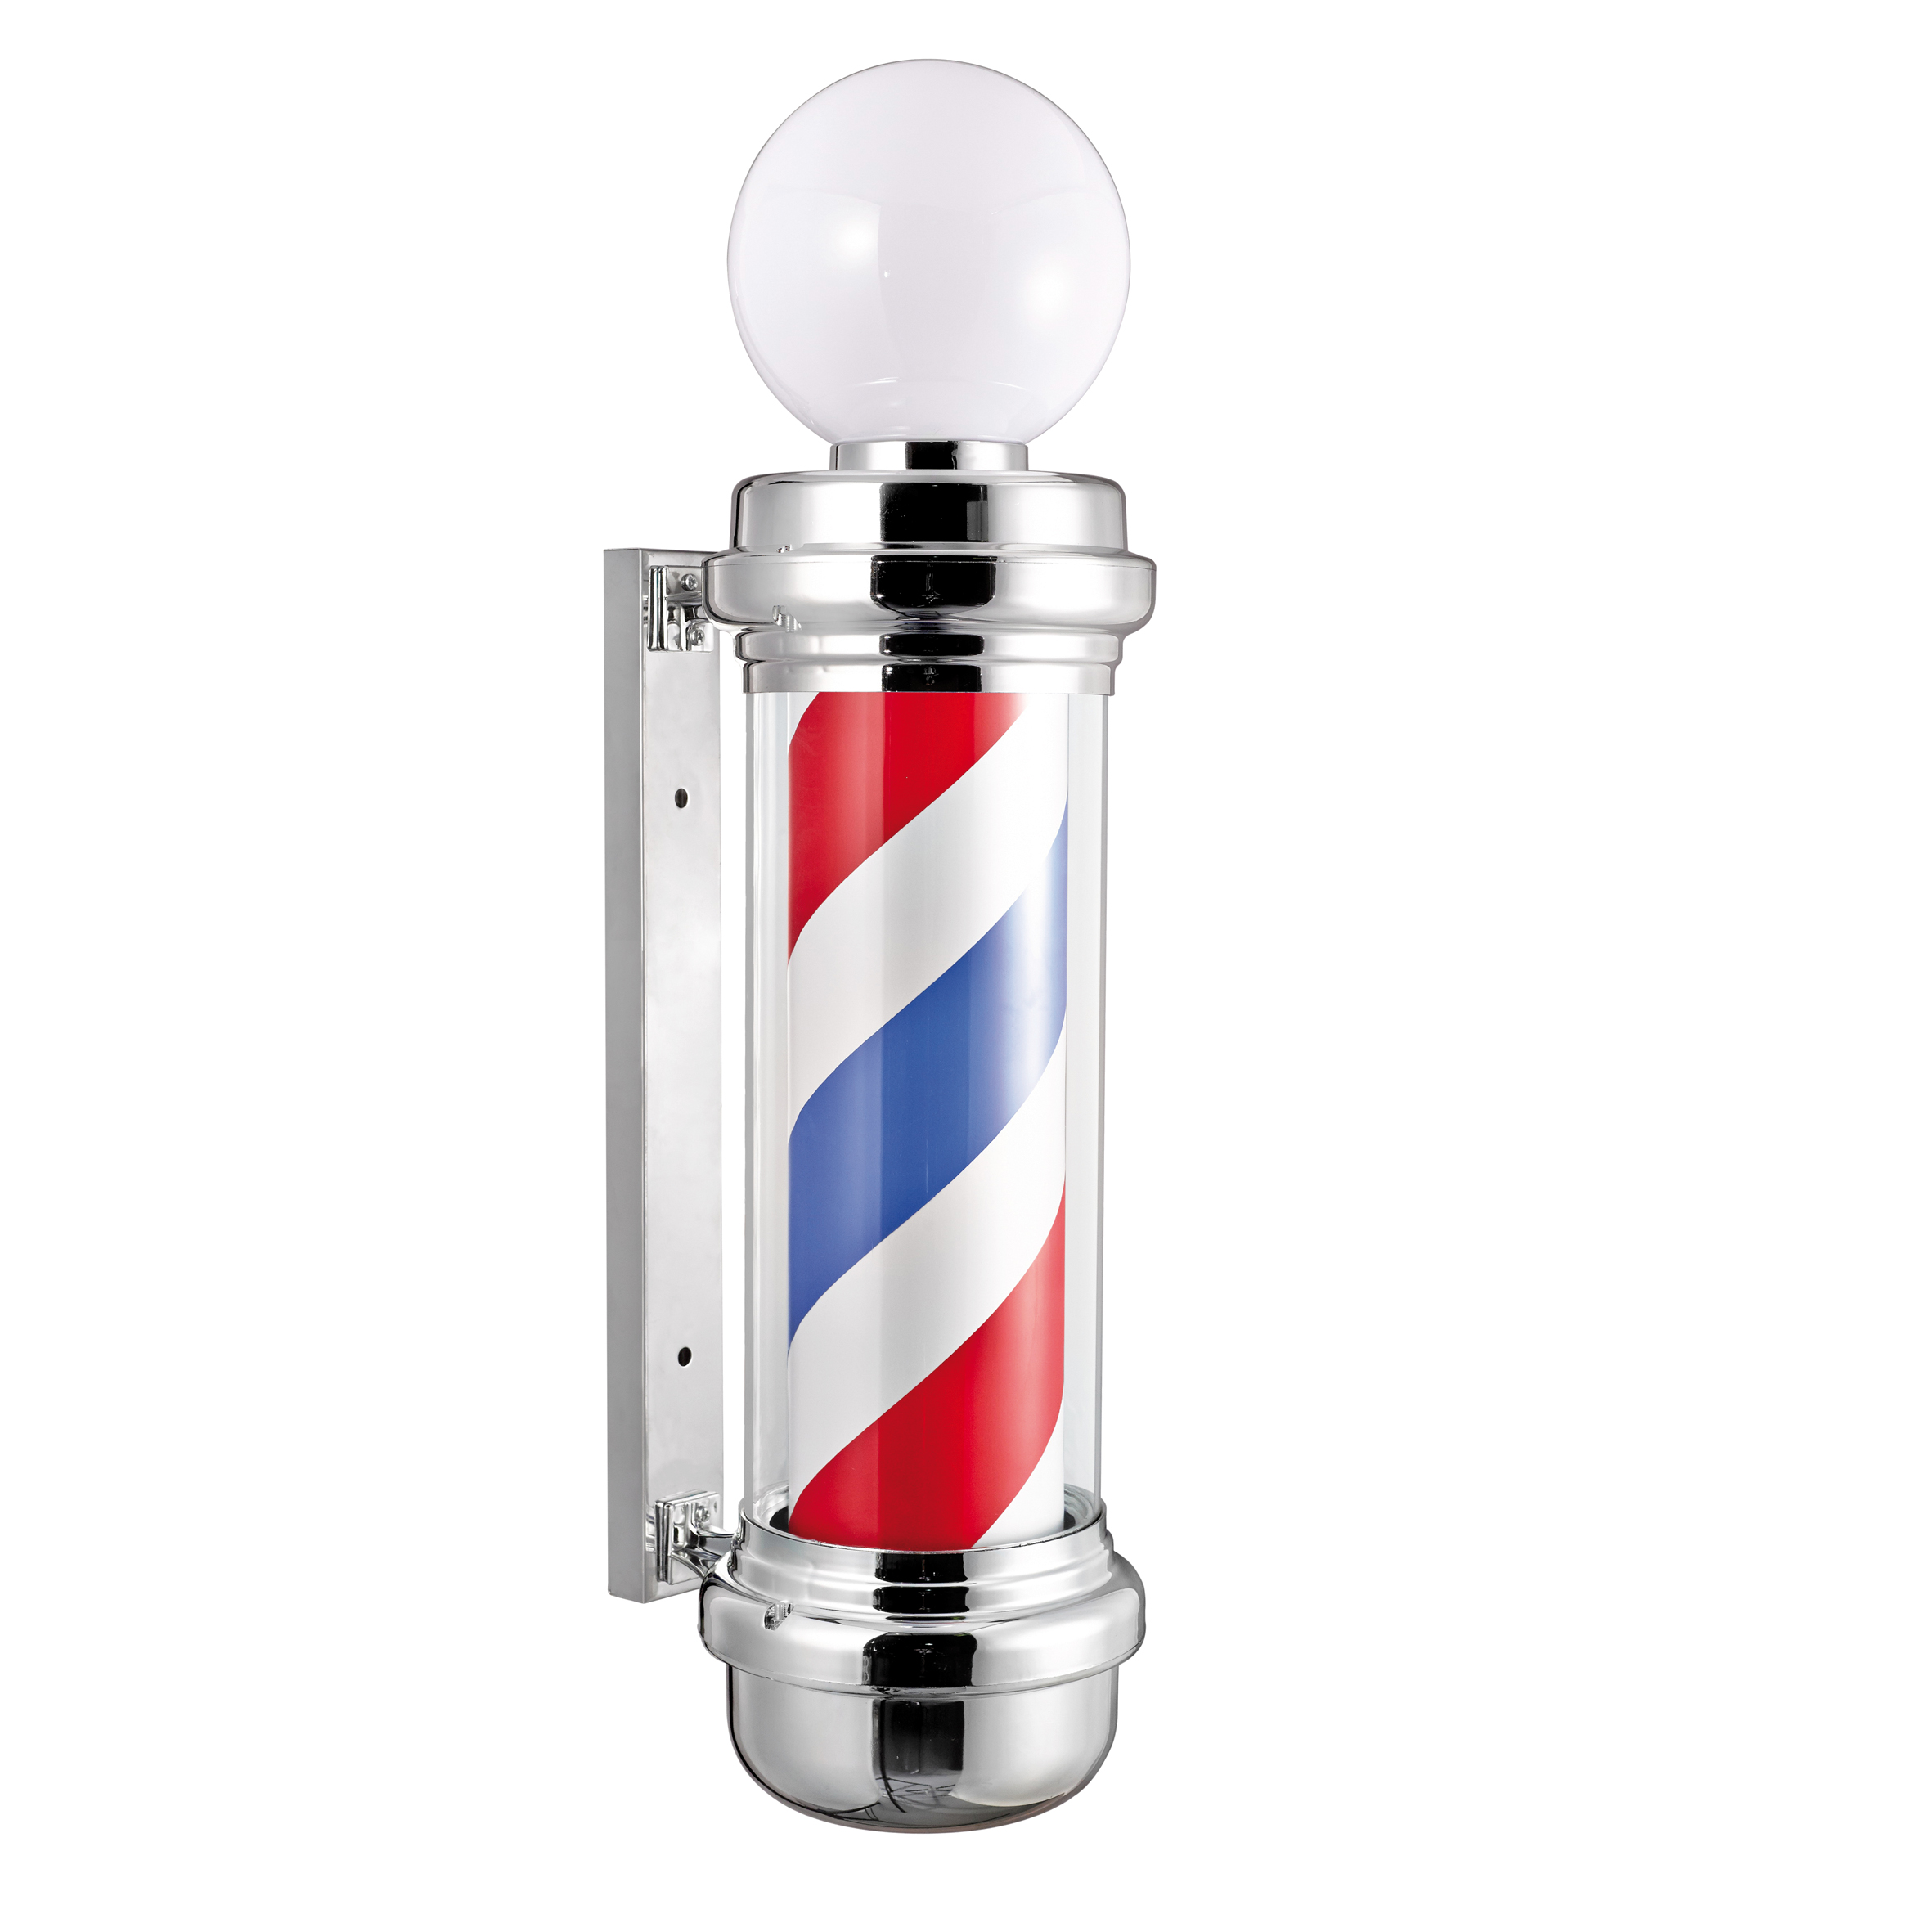 Eurostil Sphere Chrome Barber Pole 04744 - svetelný barber stĺpik